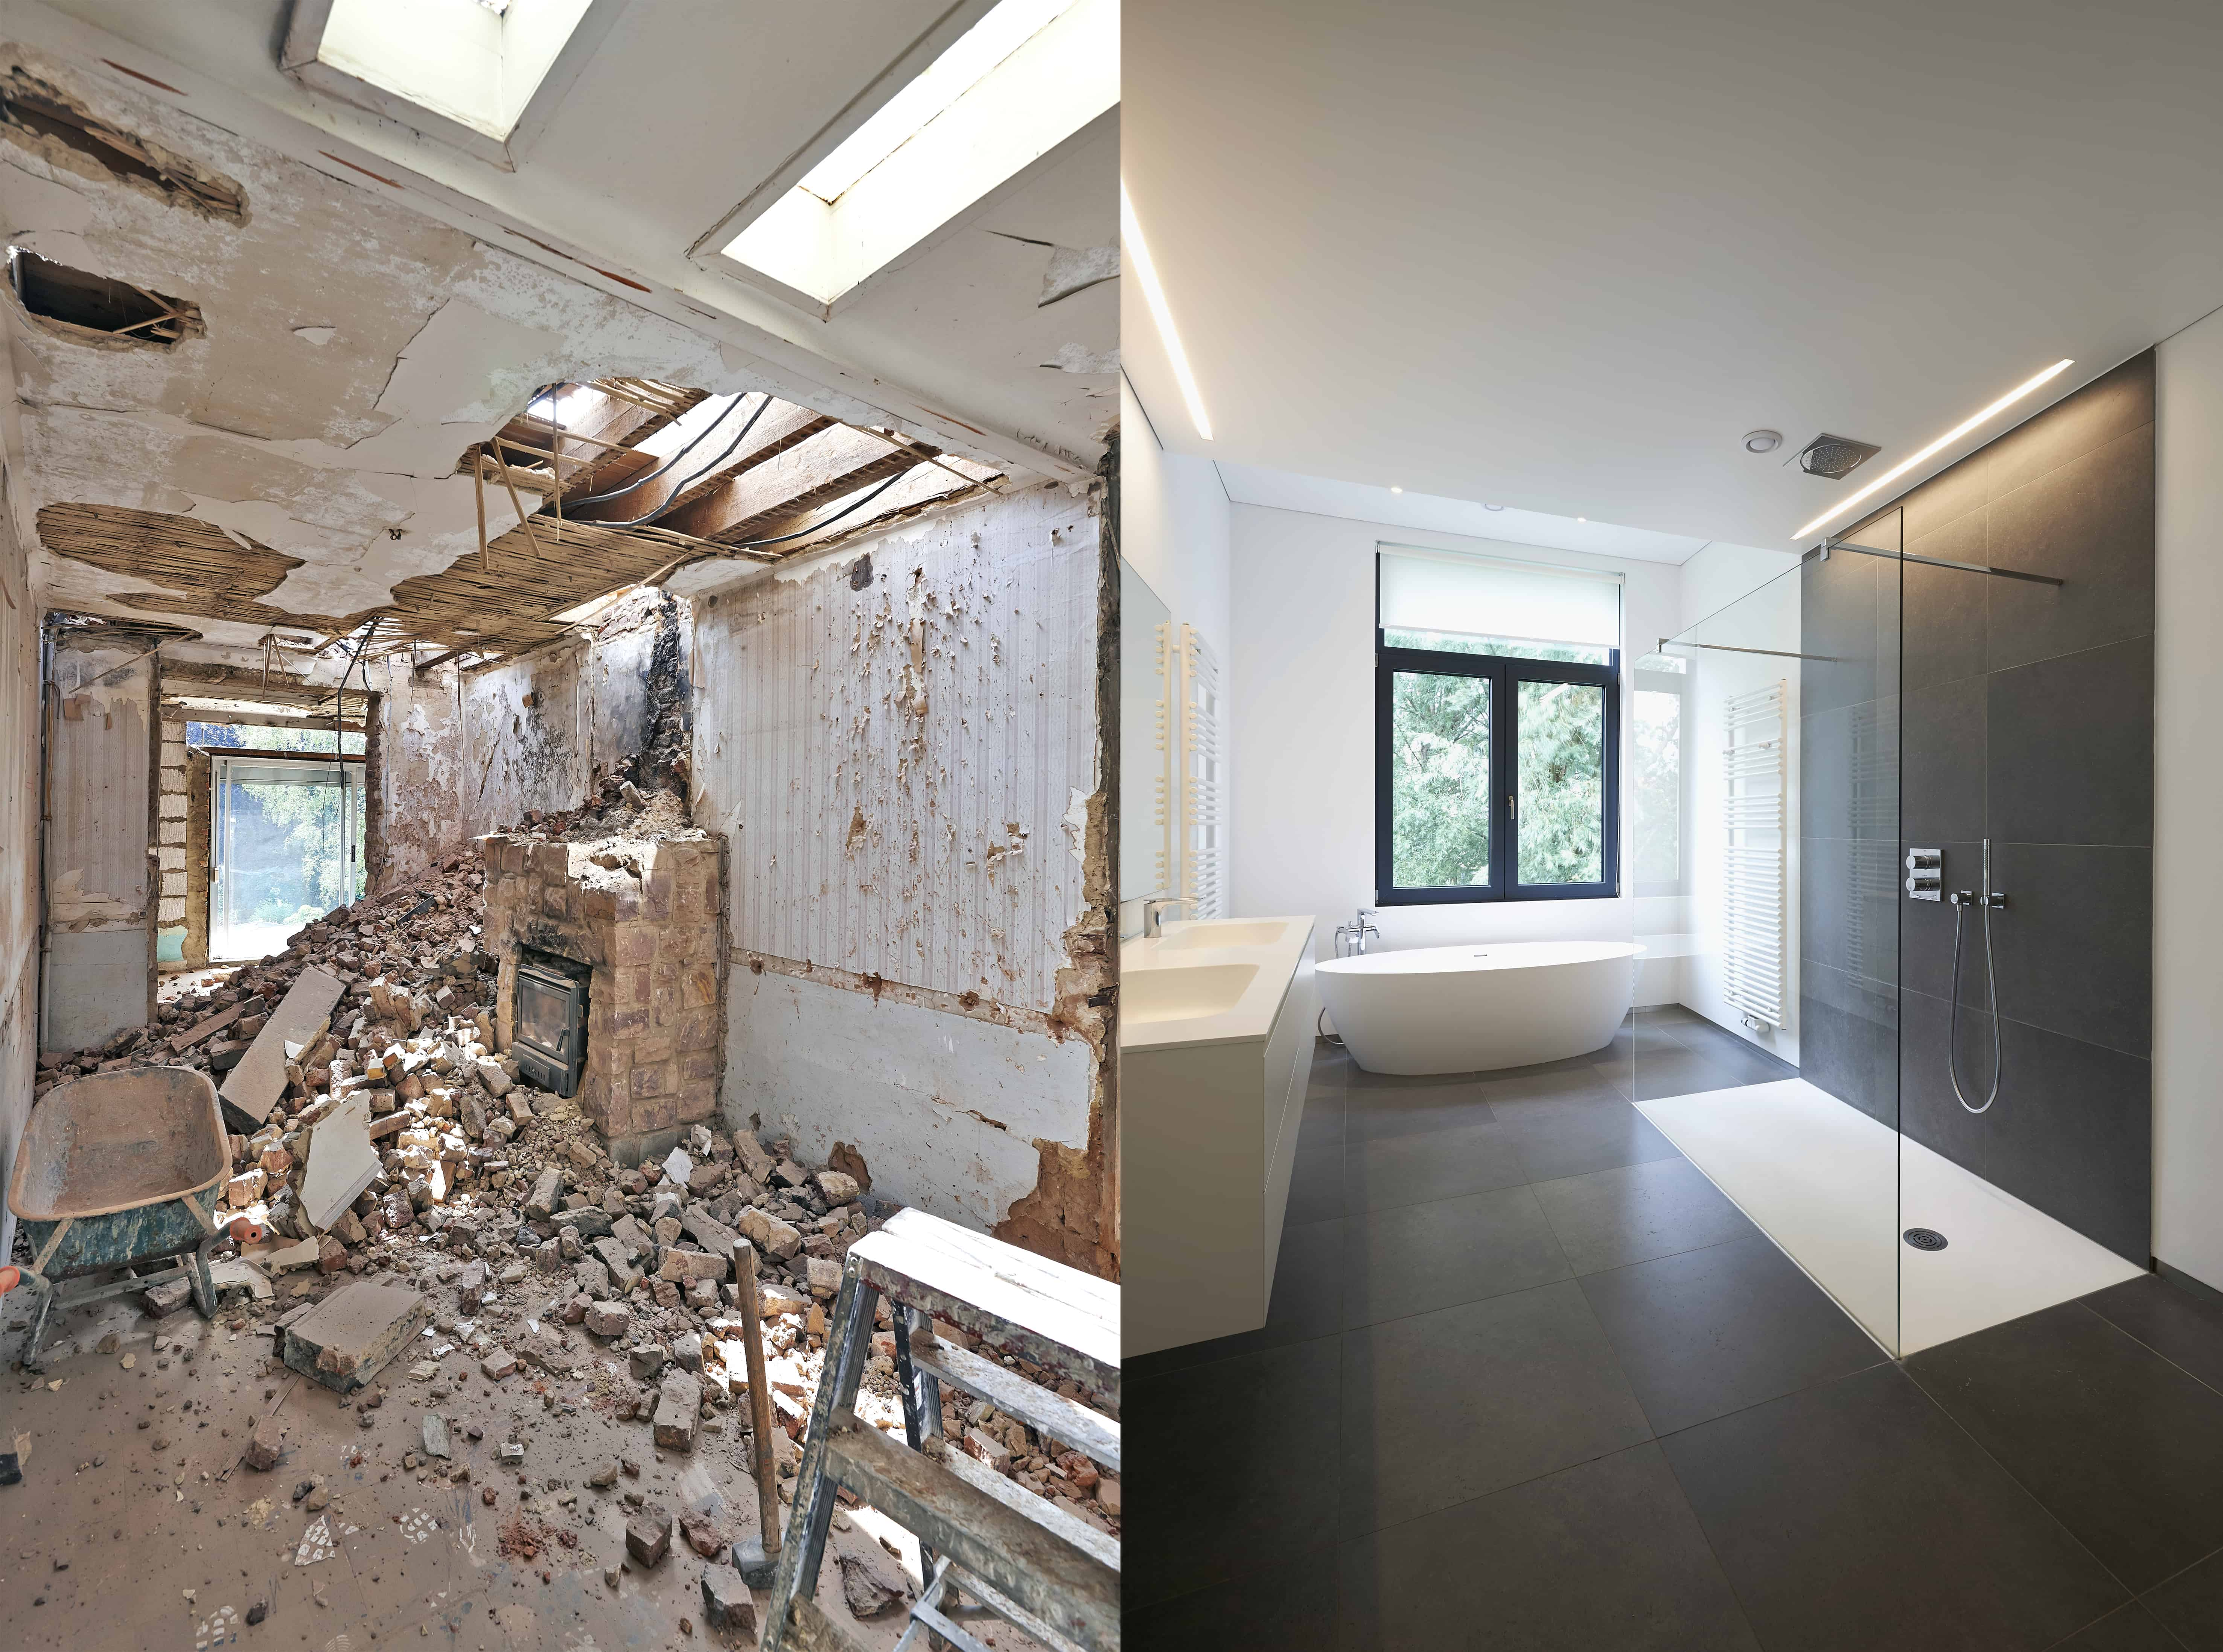 Bathroom remodel before and after by Badger Handyman